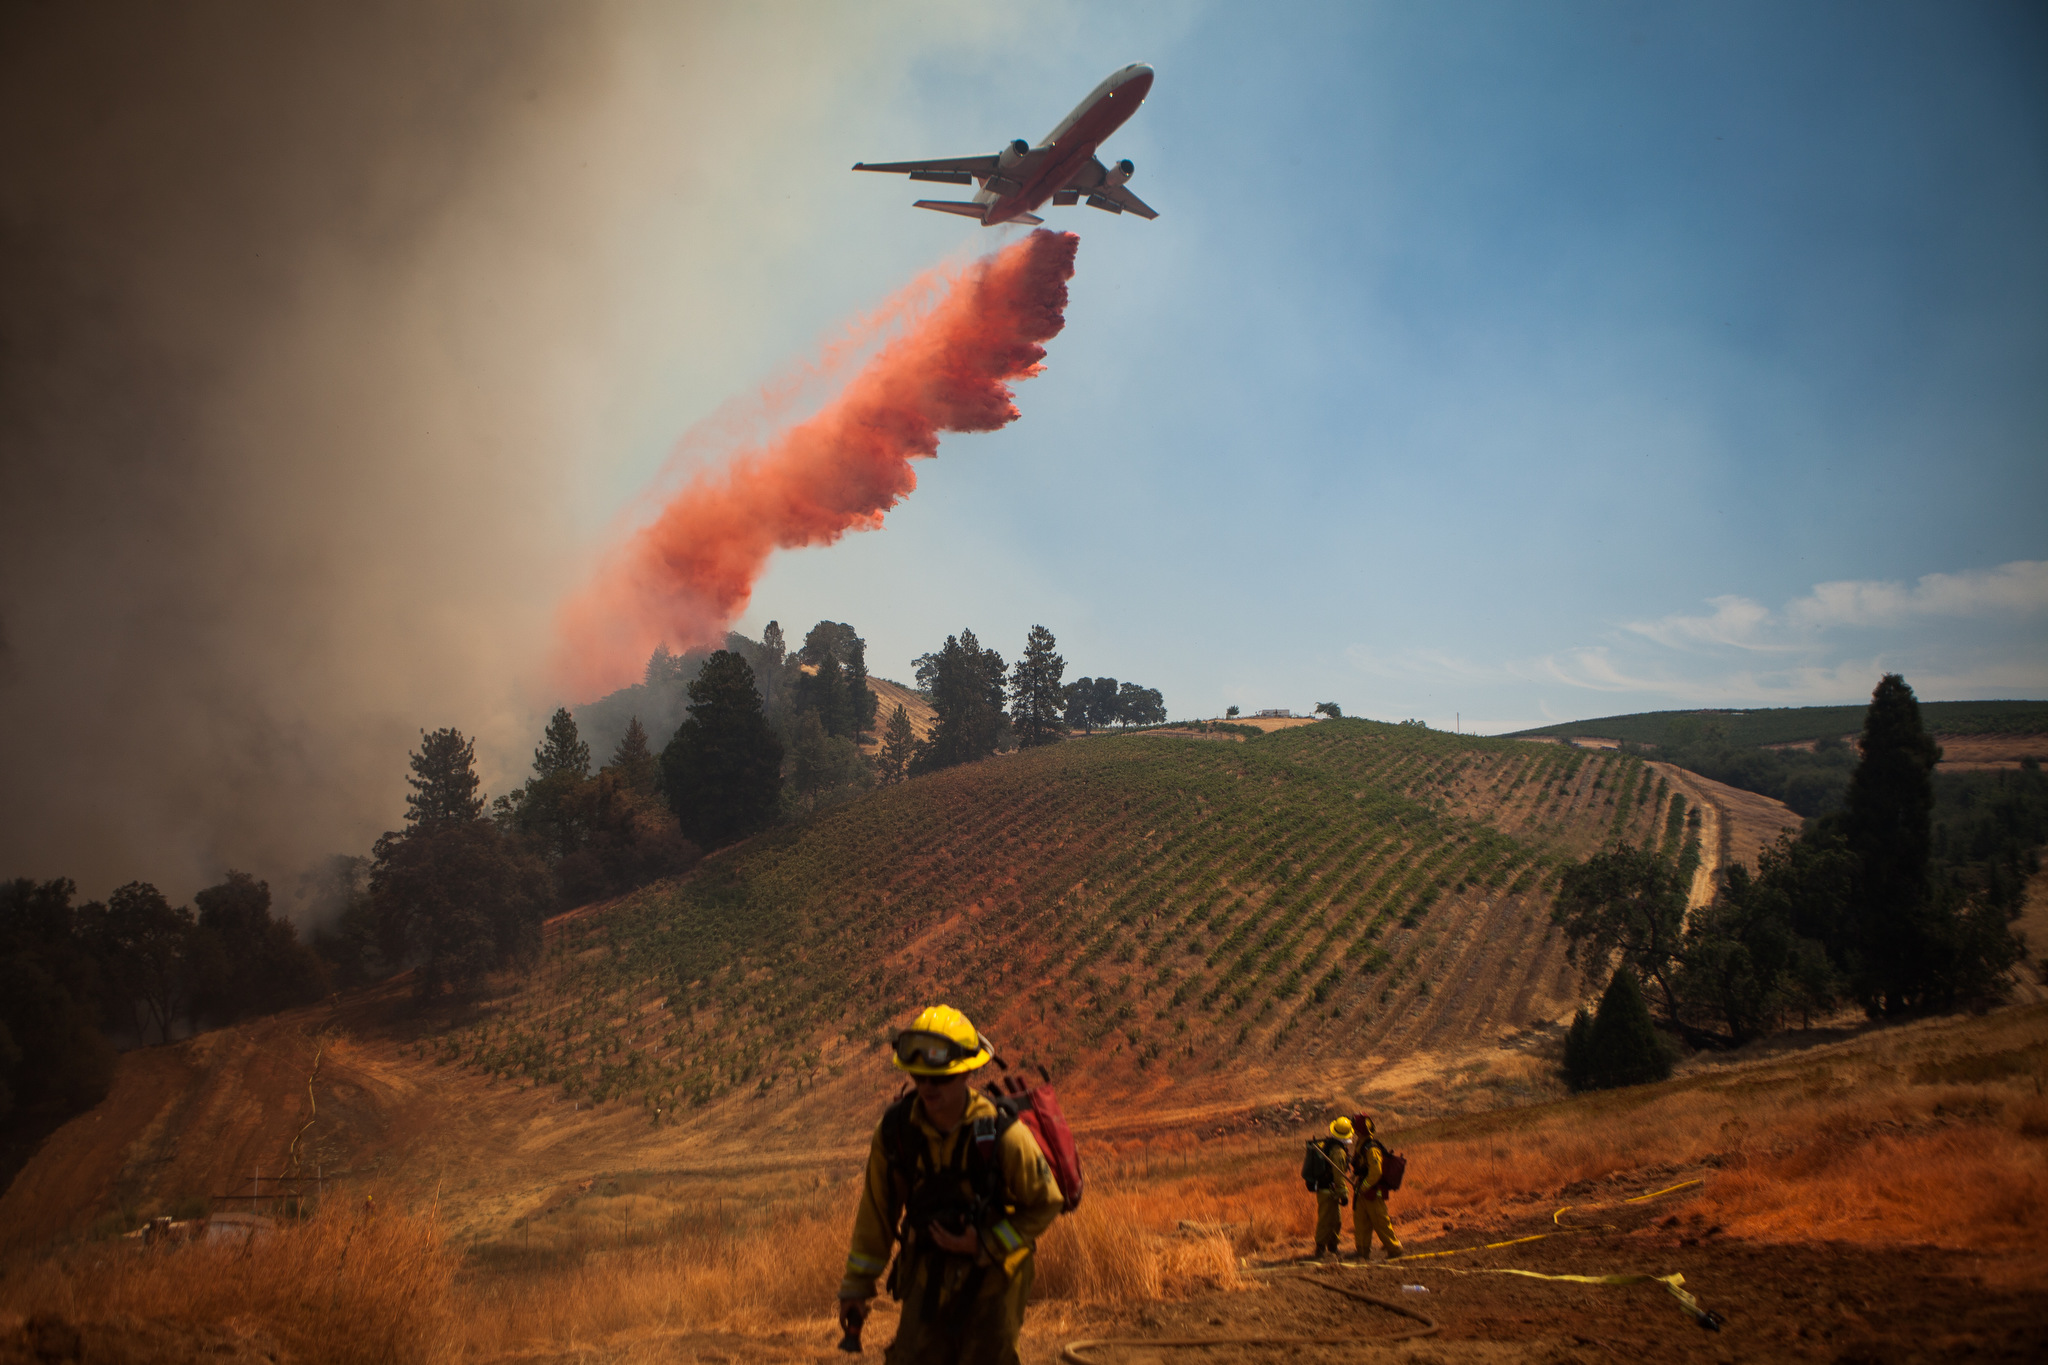 A plane drops fire retardant on a vineyard while battling the Sand Fire near Plymouth, California, July 26, 2014. The Sand Fire destroyed 20 homes and burned more than 4,200 acres near the town of Plymouth.